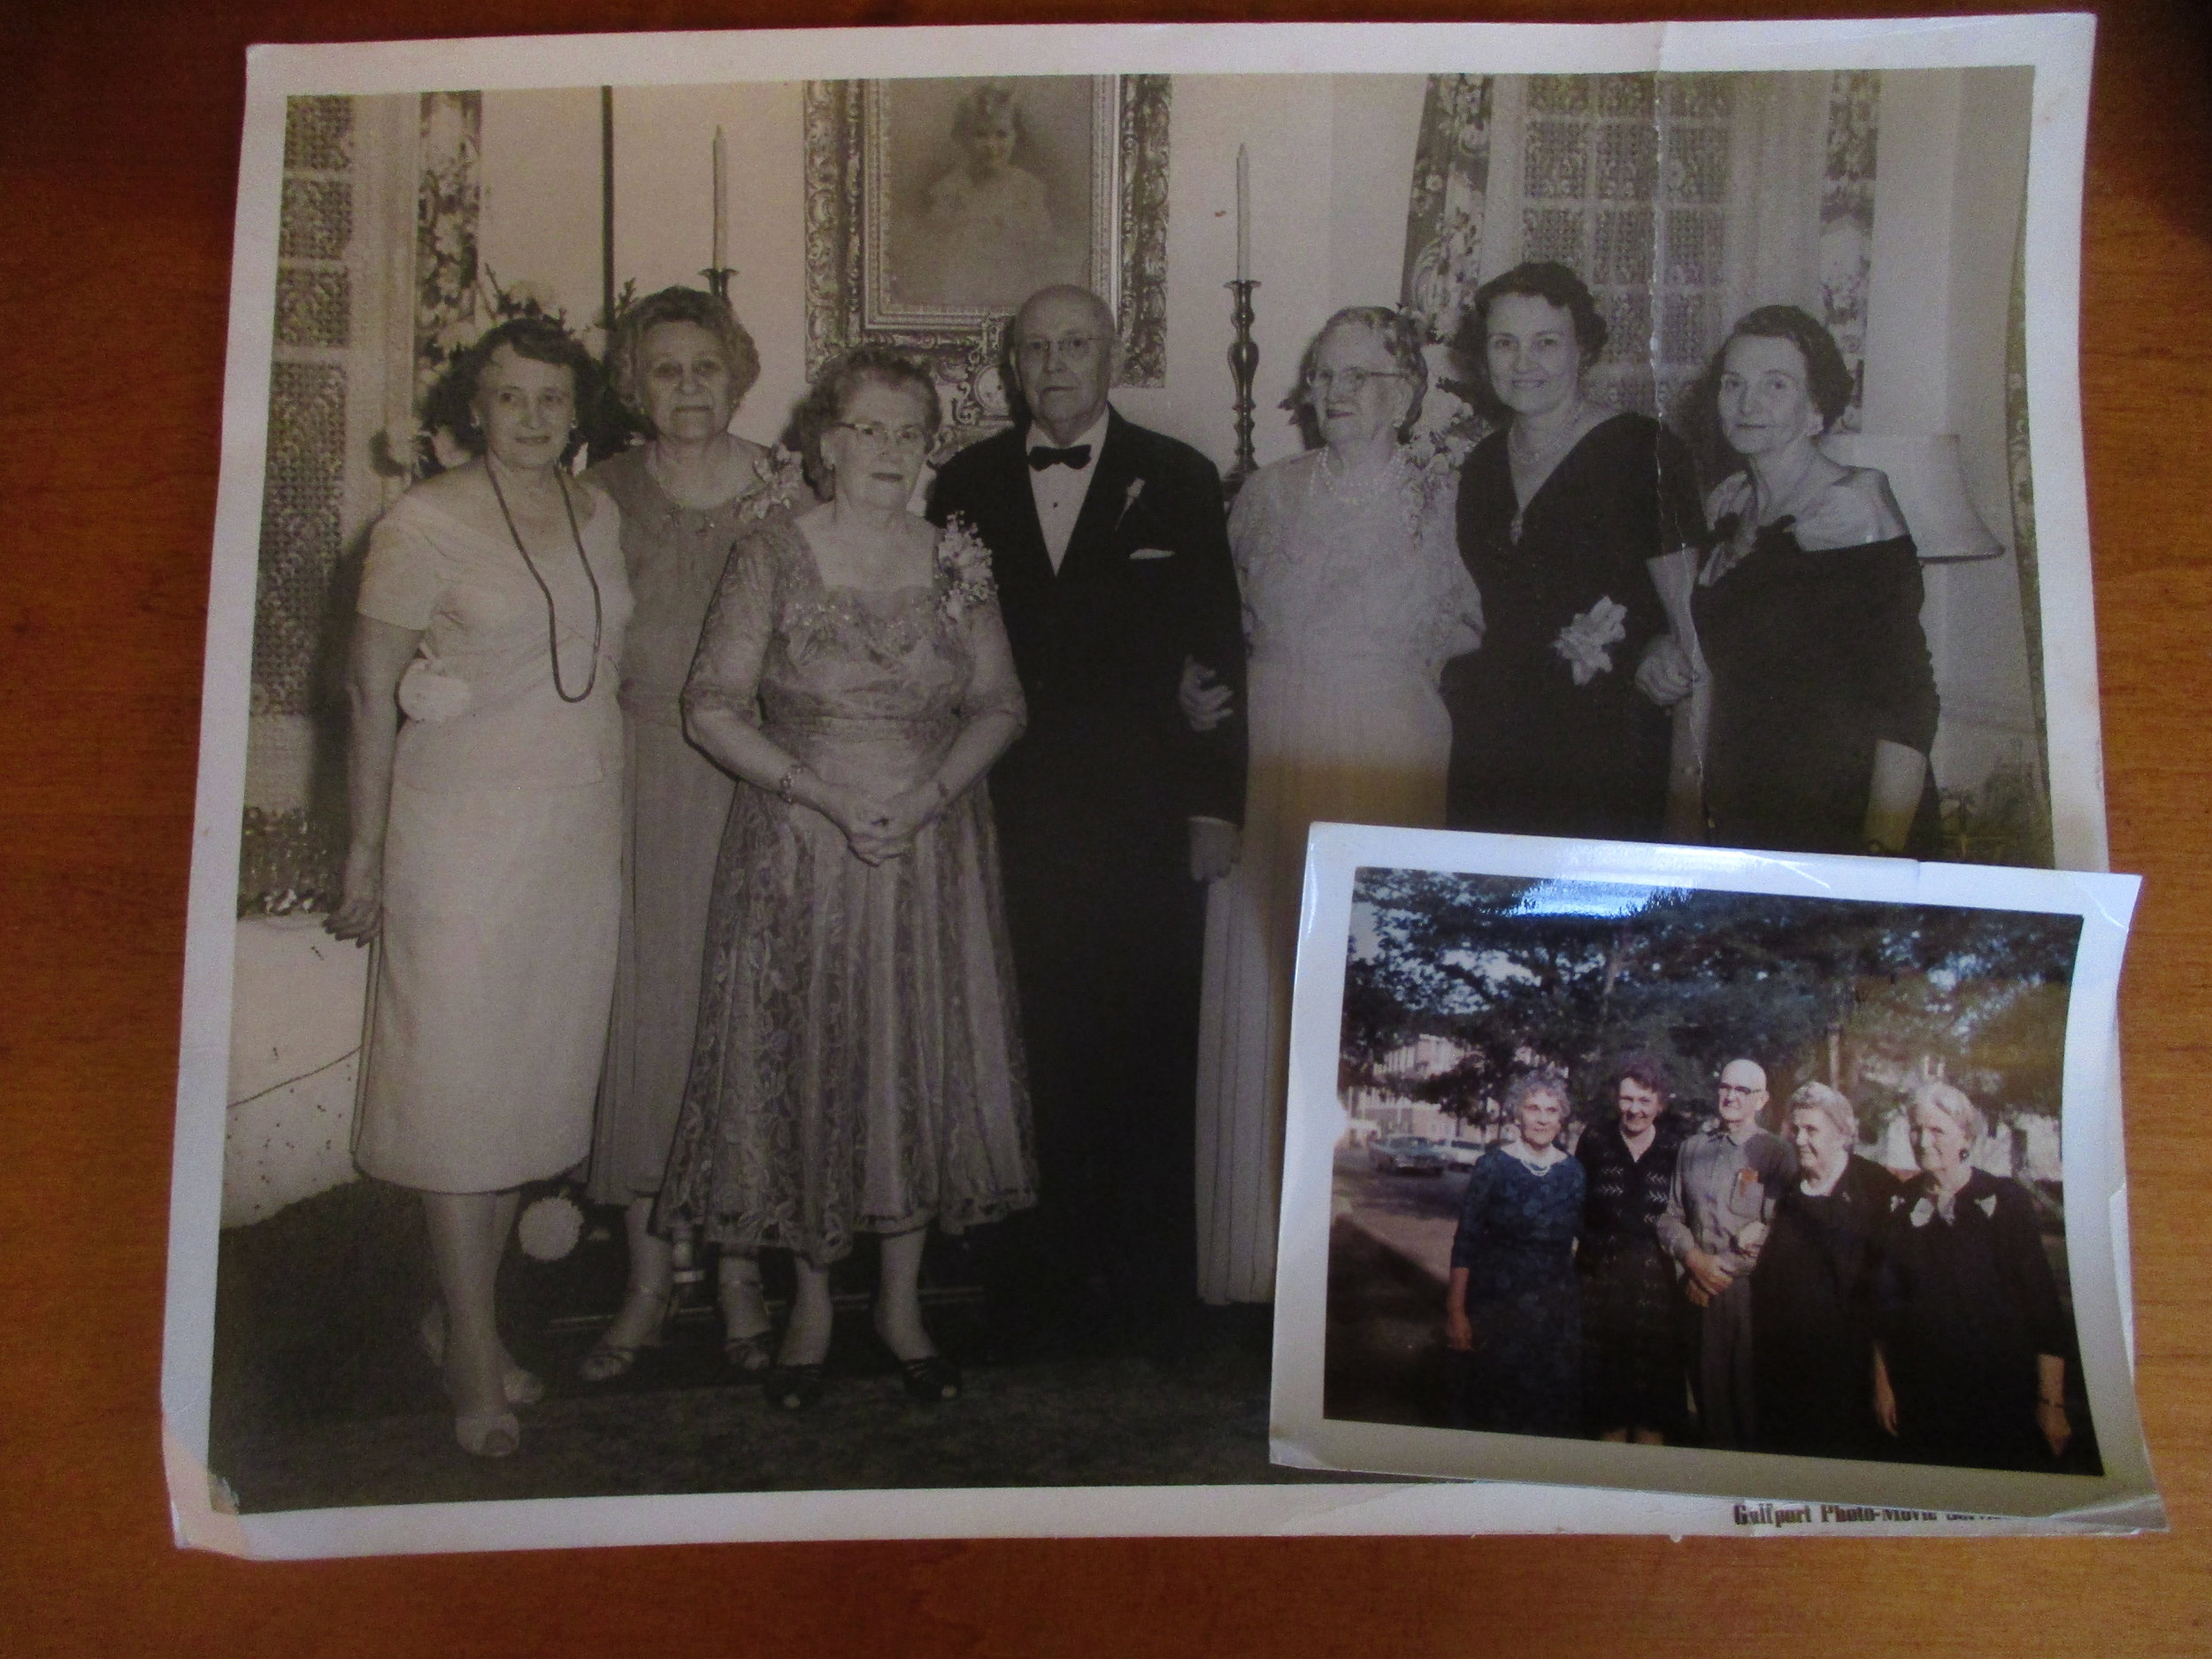 From left to right: Johnnie Dobyns, Mary Ella Dimmick, Valda Evans, Jim Evans, Fannie Hollingsworth, Kate Thomson, Lal Moody. Taken on the occasion of the 50th wedding anniversary of Valda and Jim Evans.  Inset, from left to right: Laura Sampson, Kate Thomson, Ira Dimmick, Sr., Mary Ella Dimmick, Fannie Hollingsworth, in front of the Hollingsworth home, Columbus, Mississippi, 1955.